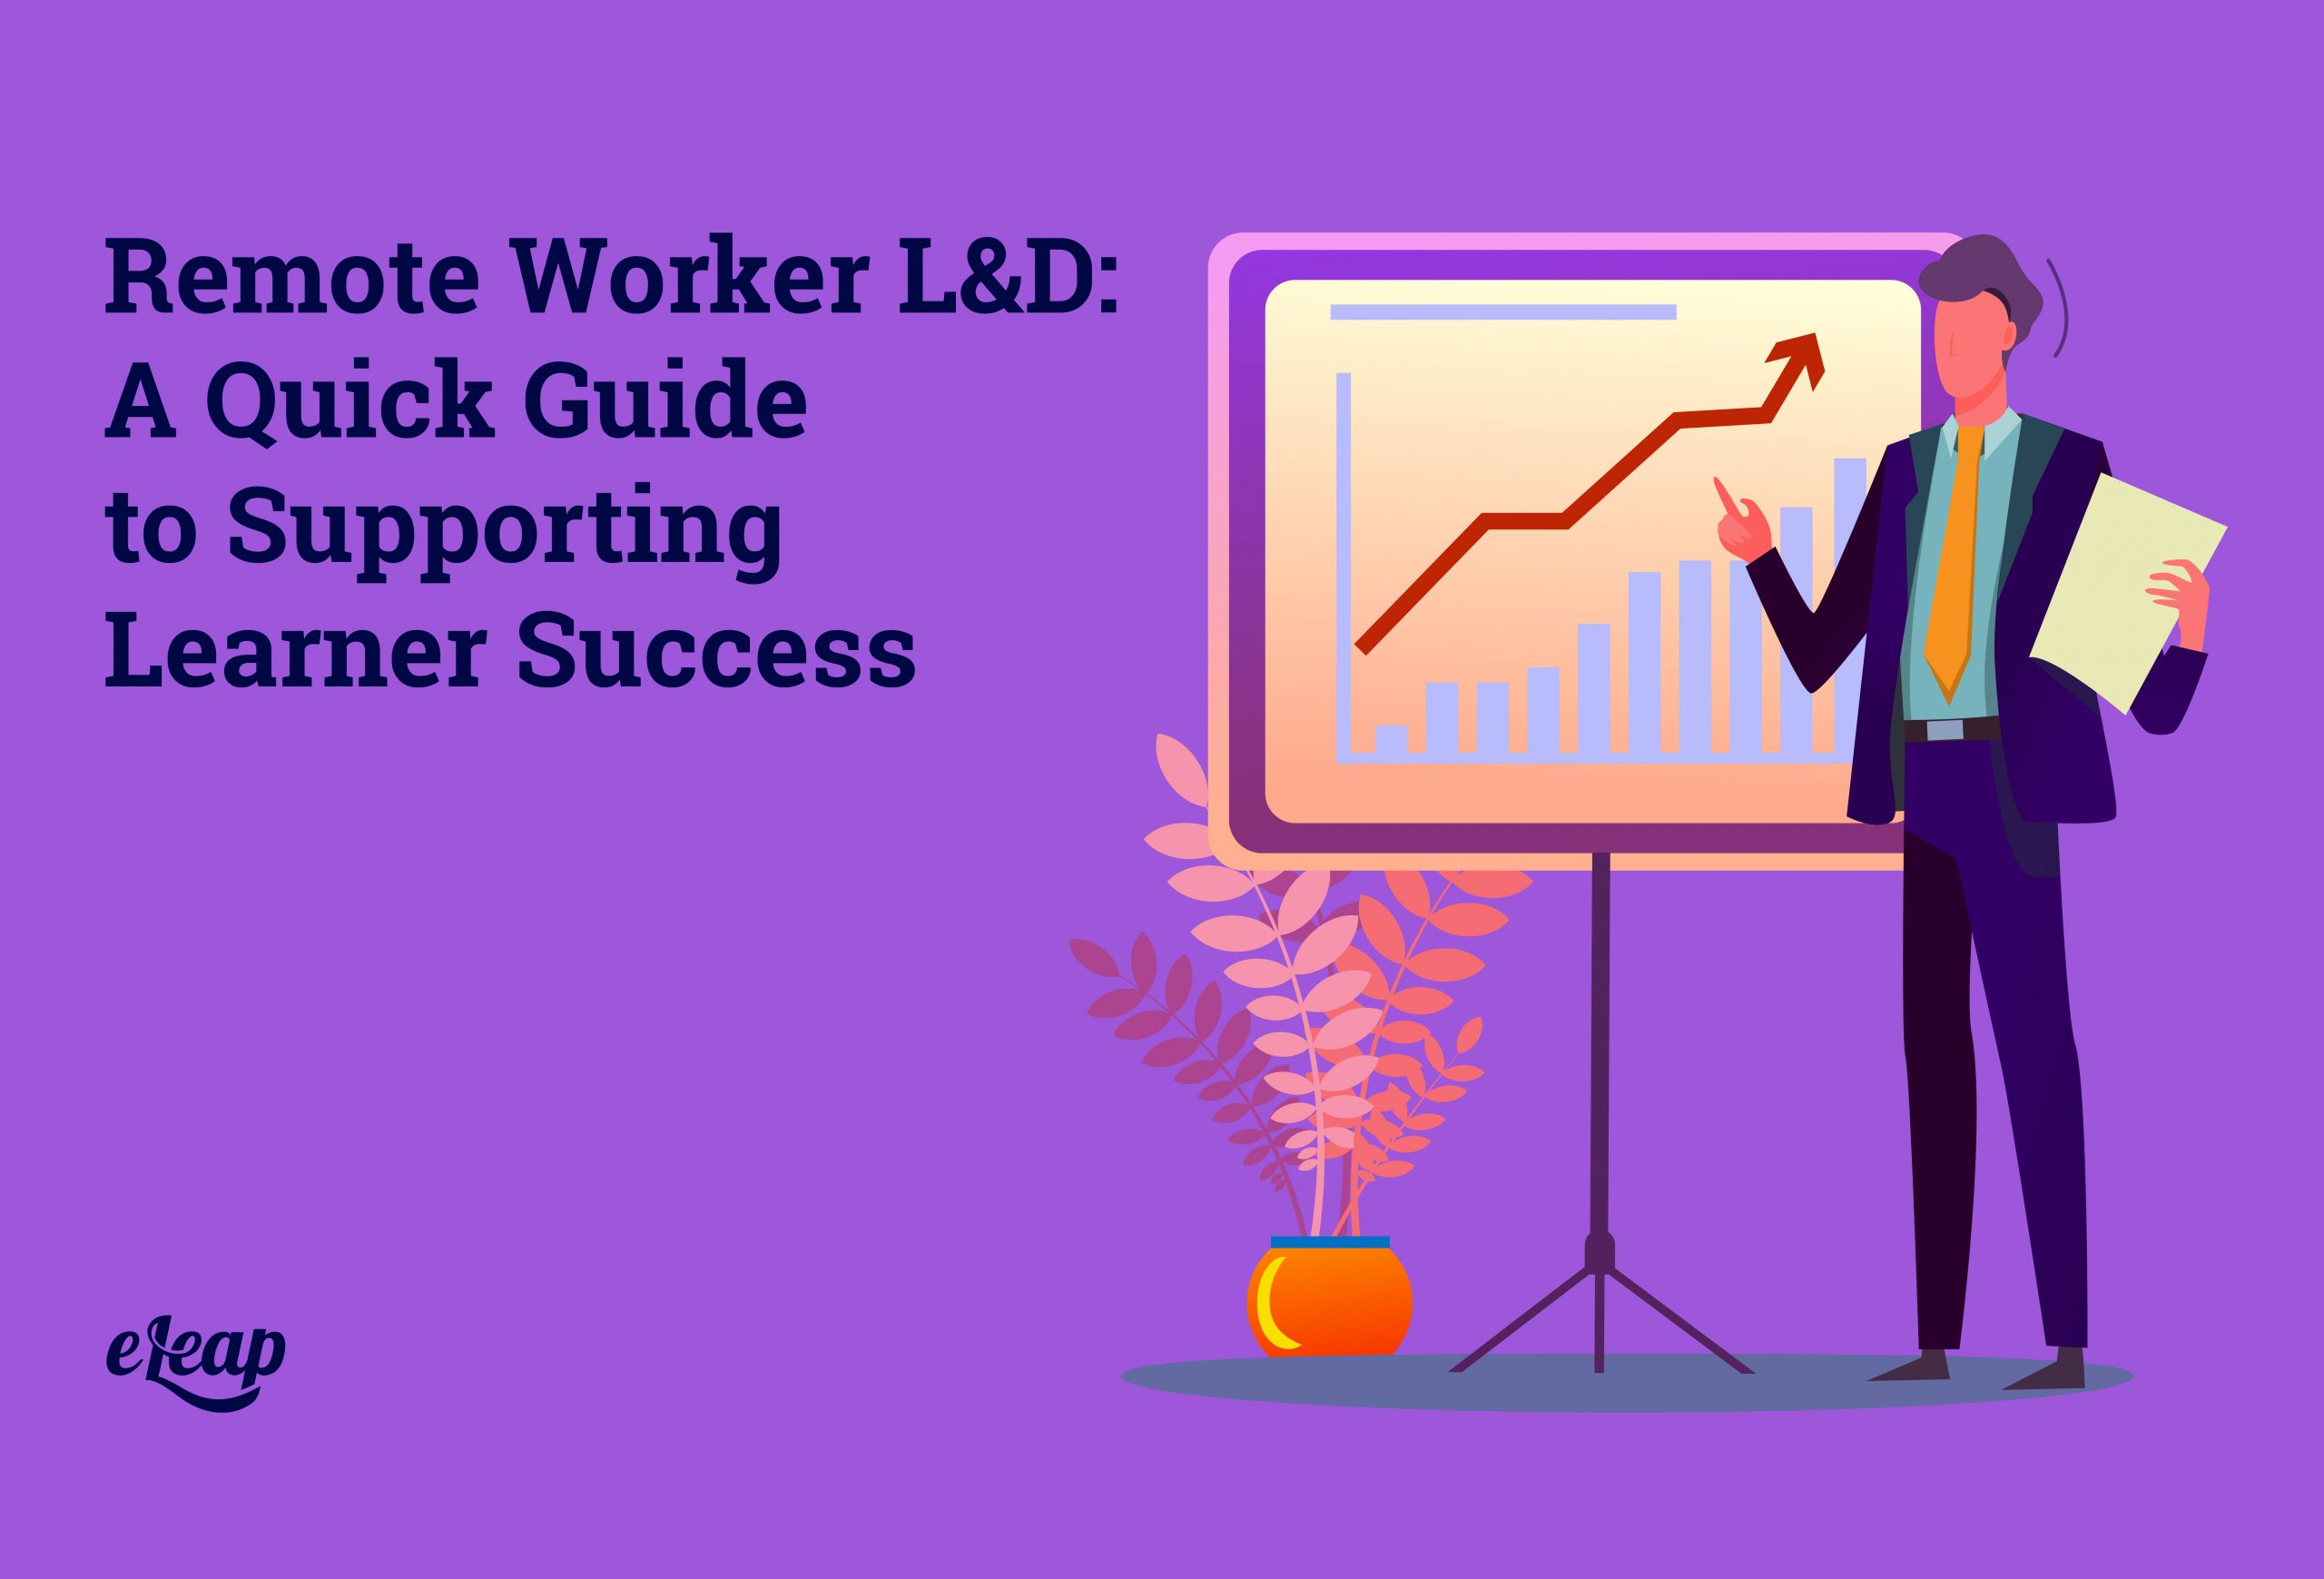 Remote Worker L&D: A Quick Guide to Supporting Learner Success